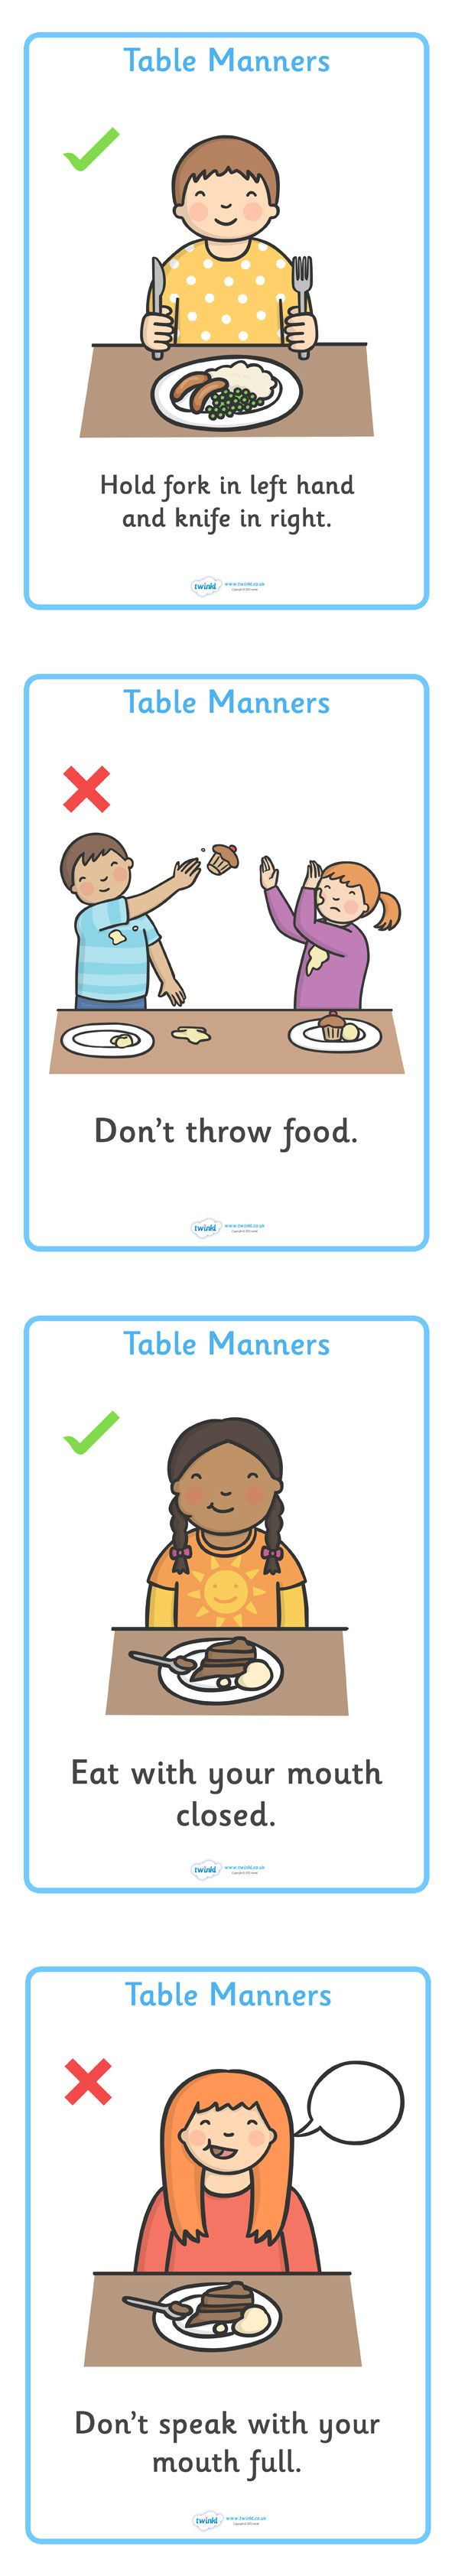 Twinkl Resources >> Table Manners Rules- Display Chart  >> Classroom printables for Pre-School, Kindergarten, Elementary School and beyond! Posters, Display, Behavior, Class Management